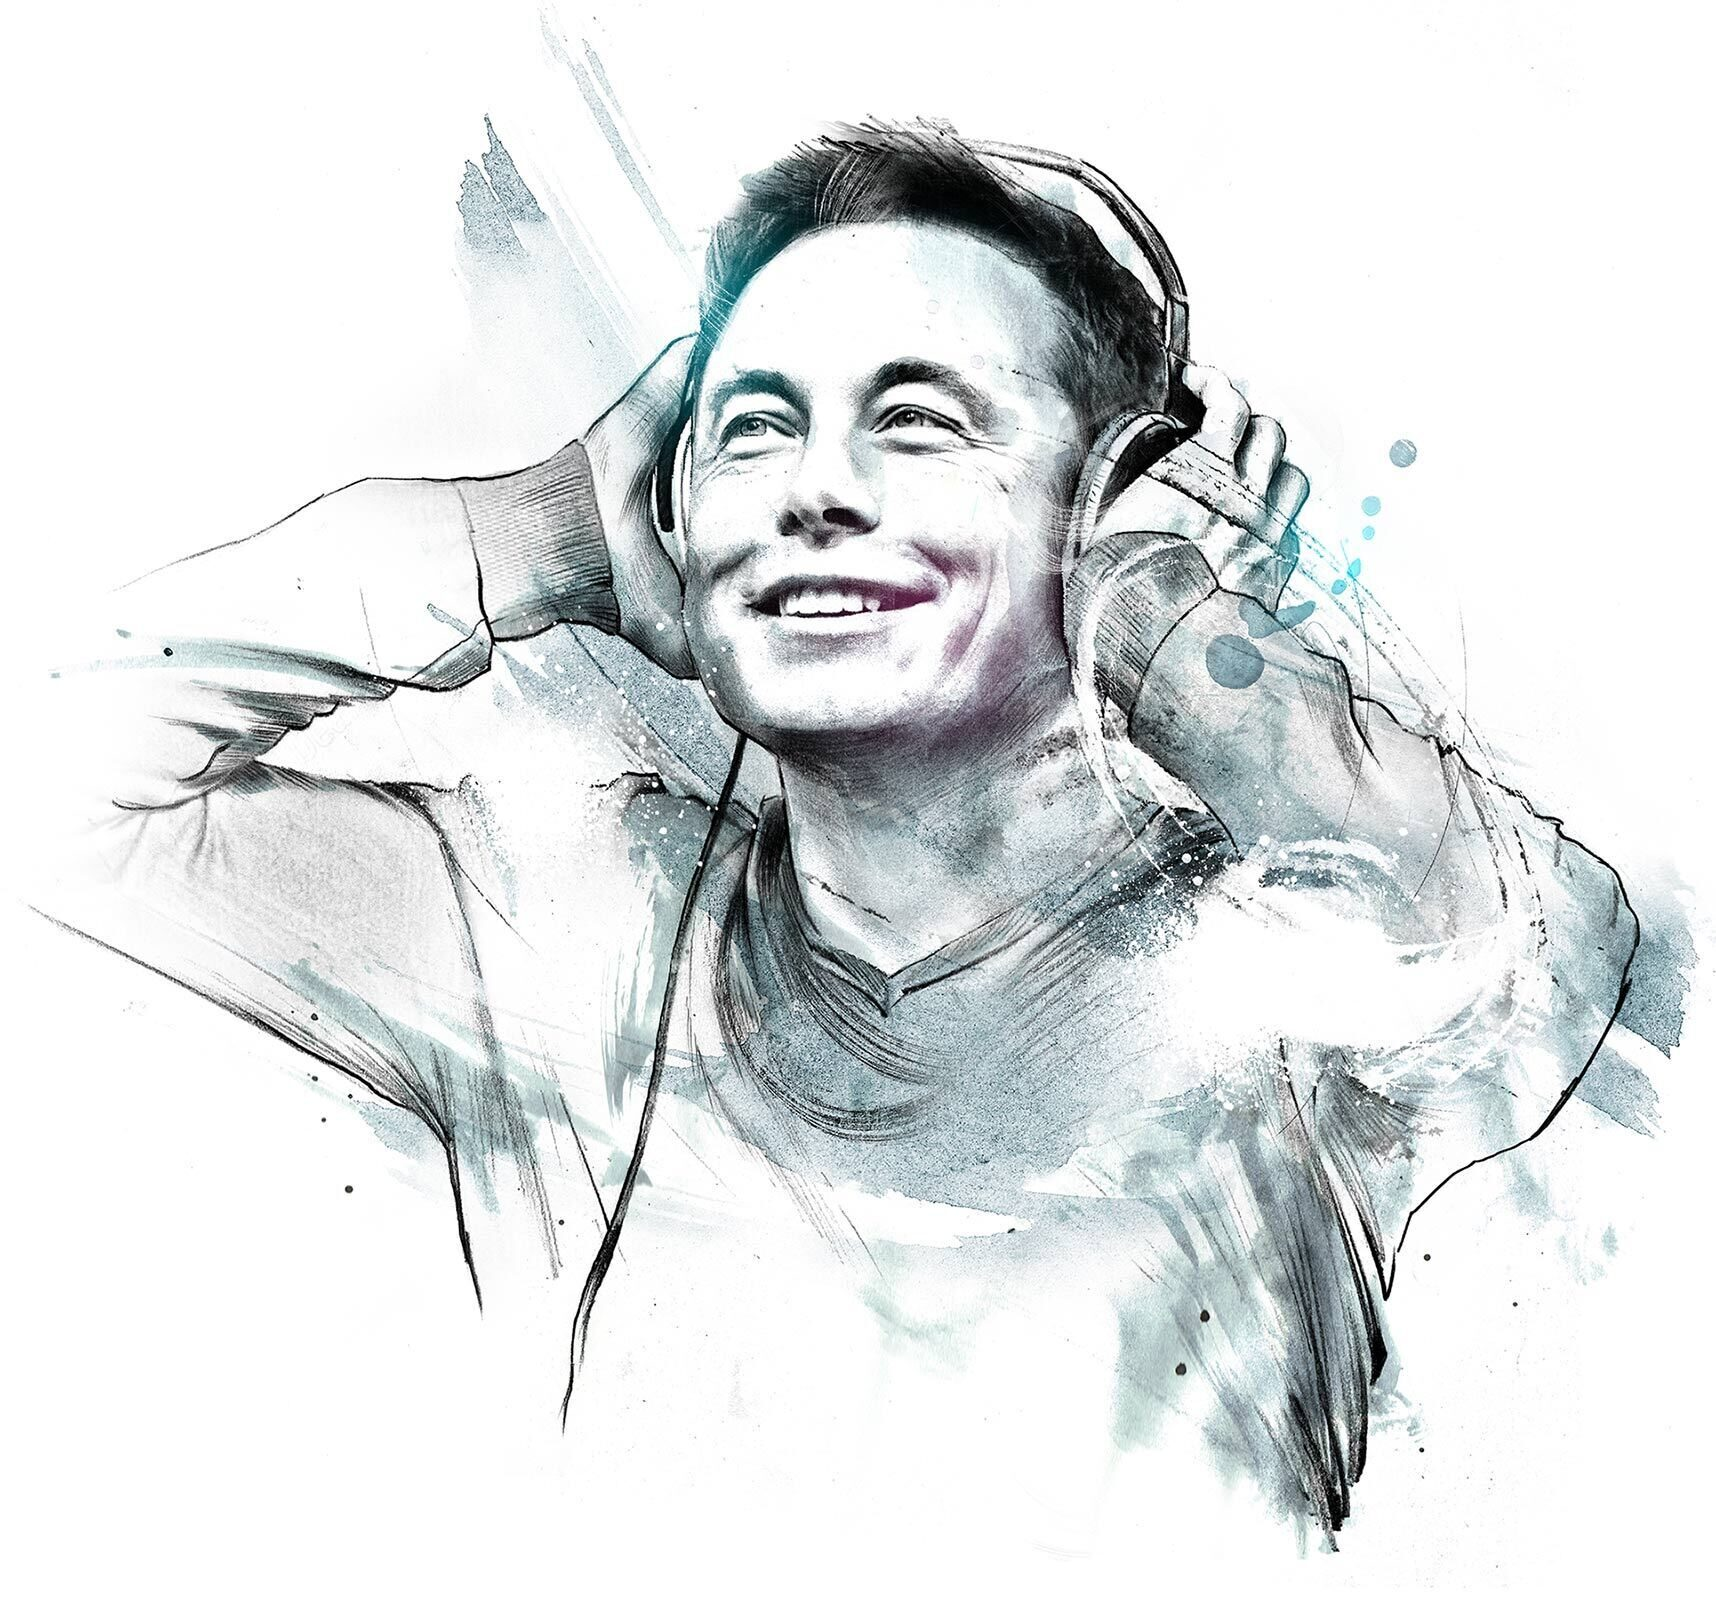 Elon Musk portrait illustration - Kornel Illustration | Kornel Stadler portfolio